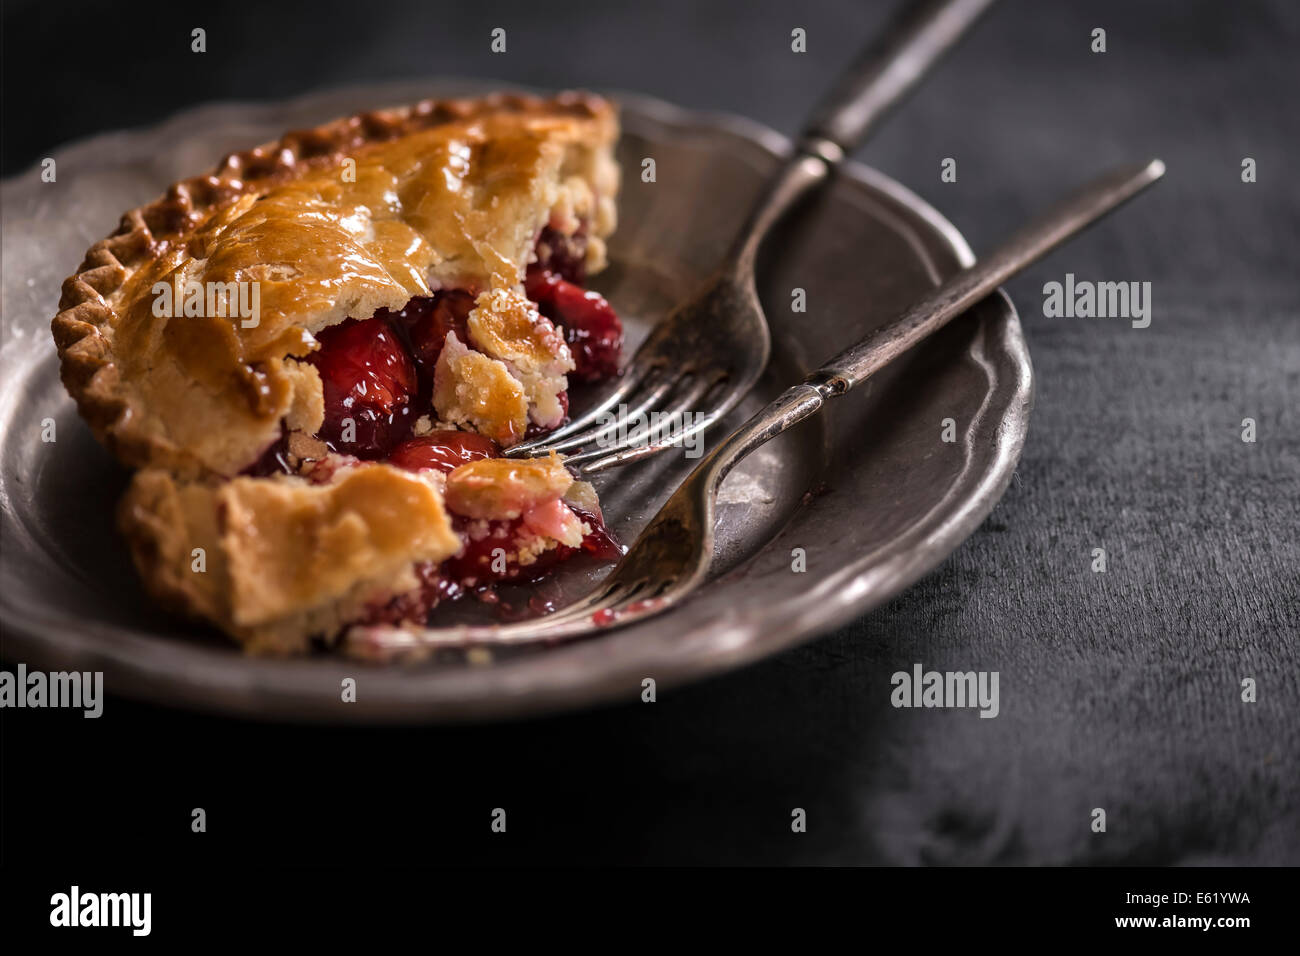 Small cherry pie on metal plate with antique forks. Dark moody setting & Small cherry pie on metal plate with antique forks. Dark moody ...